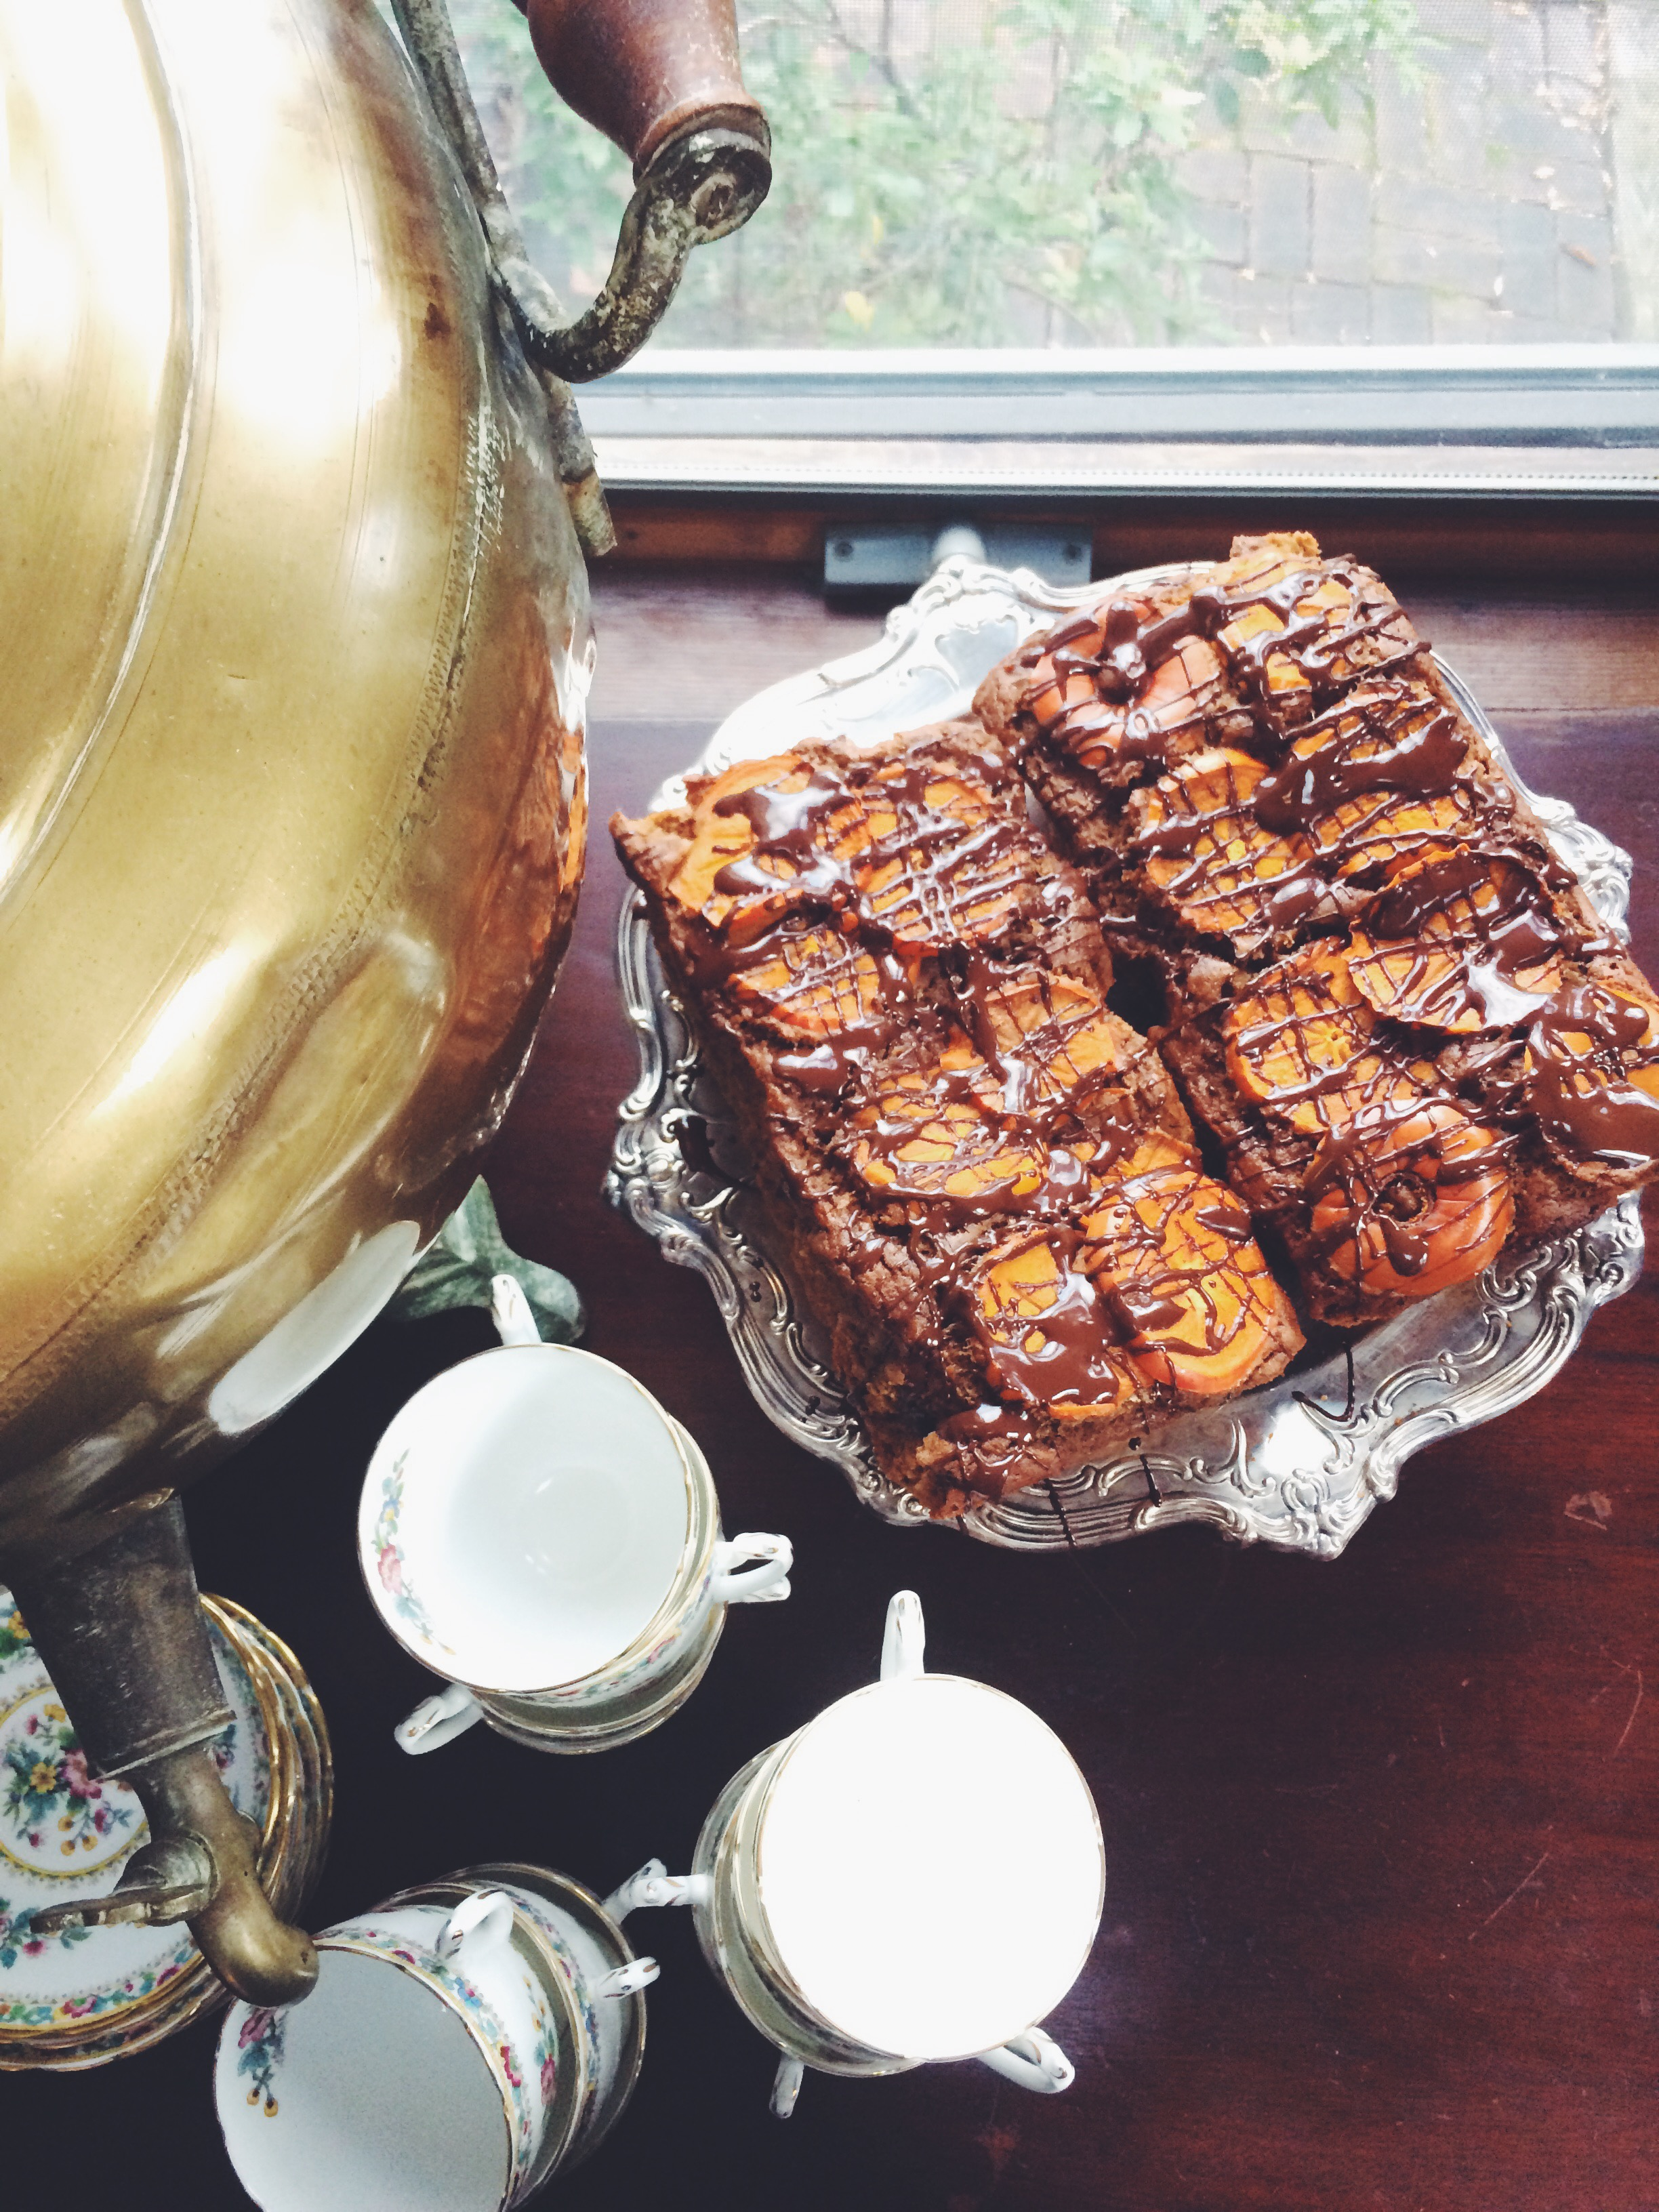 Persimmon cake (gluten free) via will frolic for food